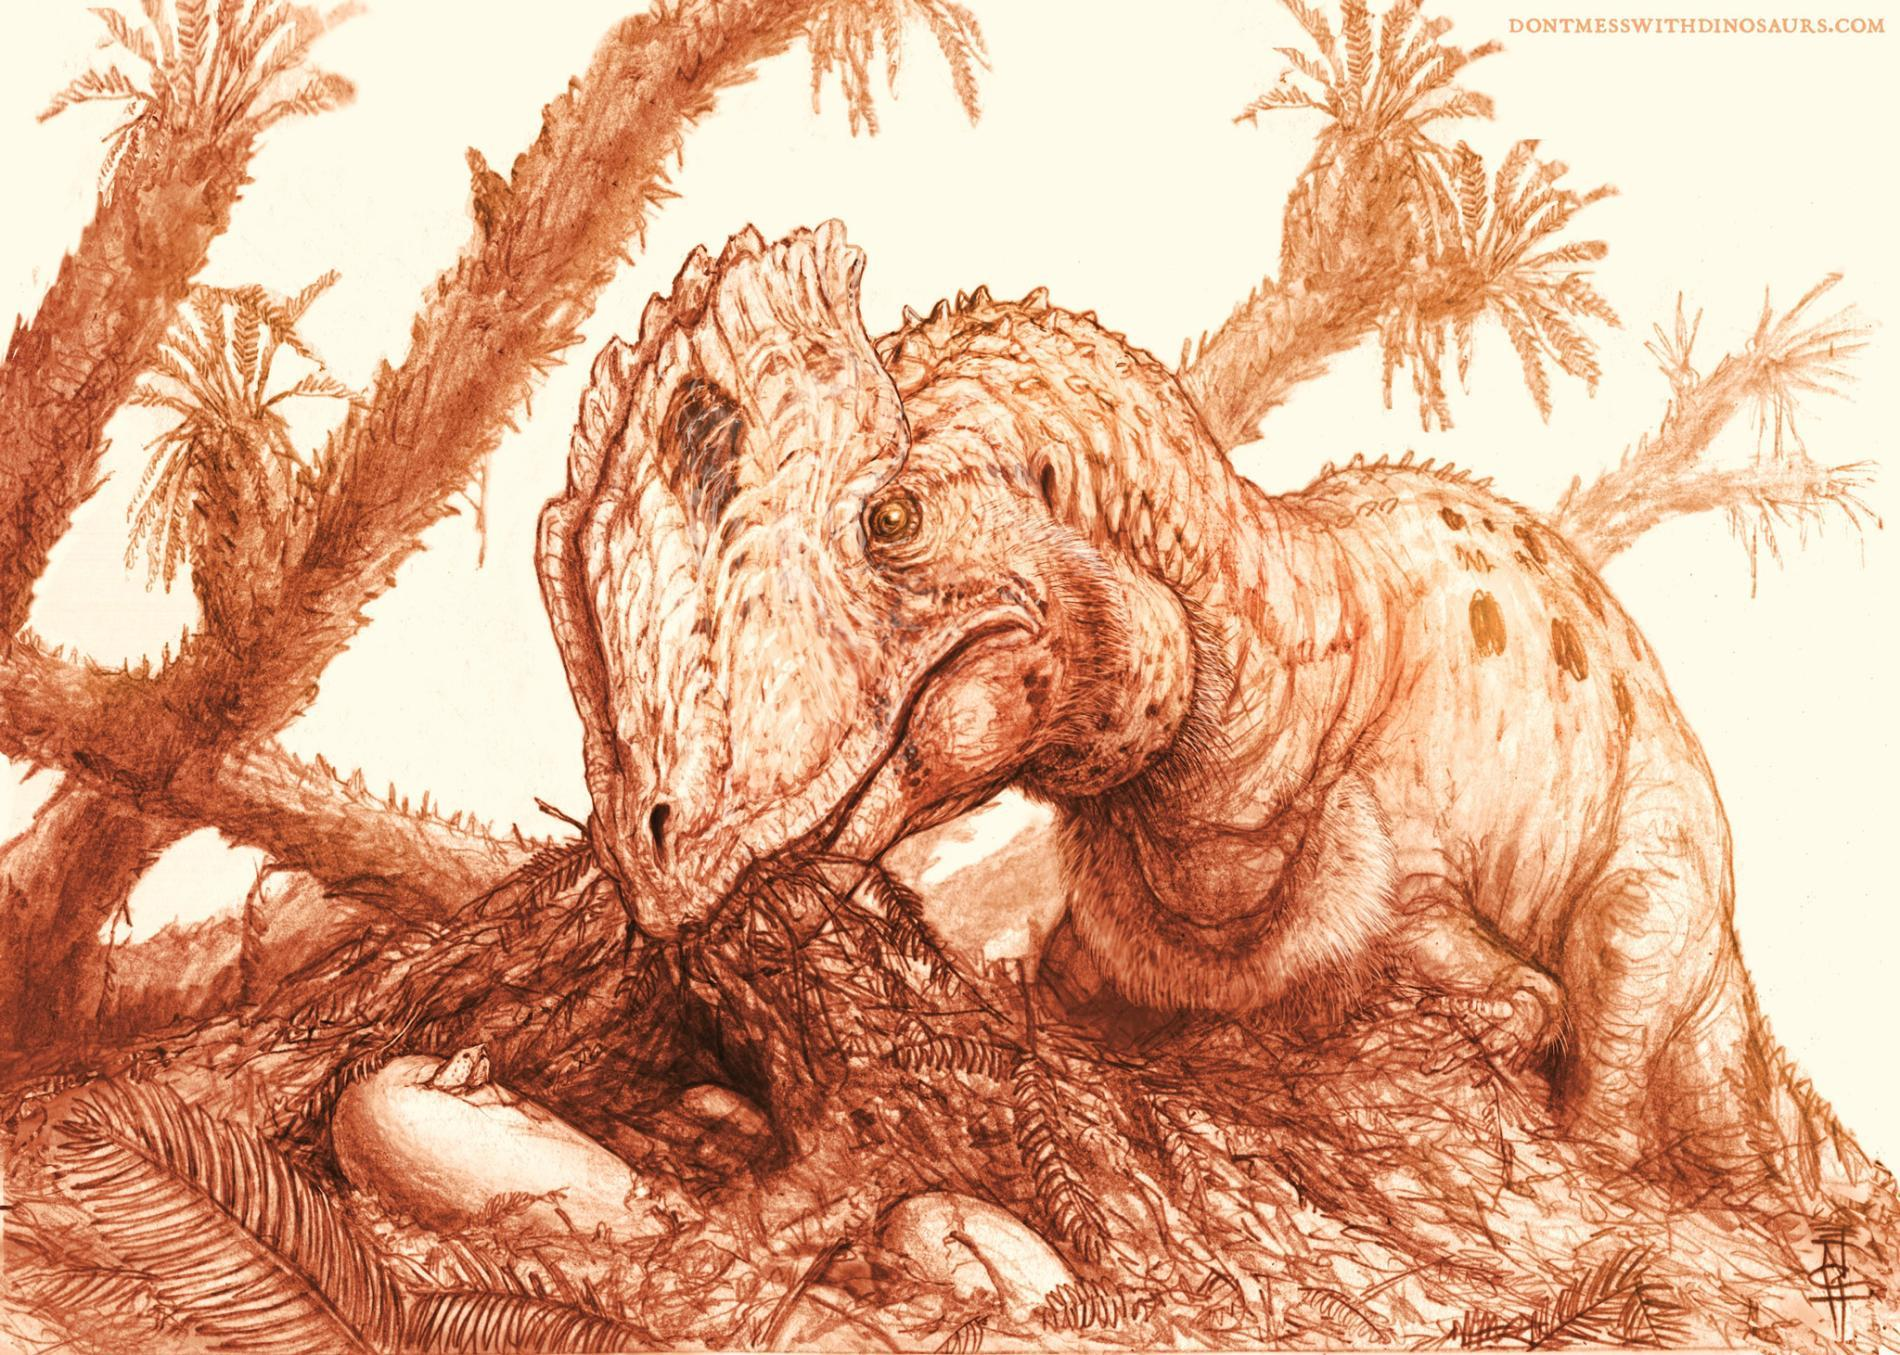 illustration in sepia tones of a dinosaur eating with prehistoric palm trees in the background